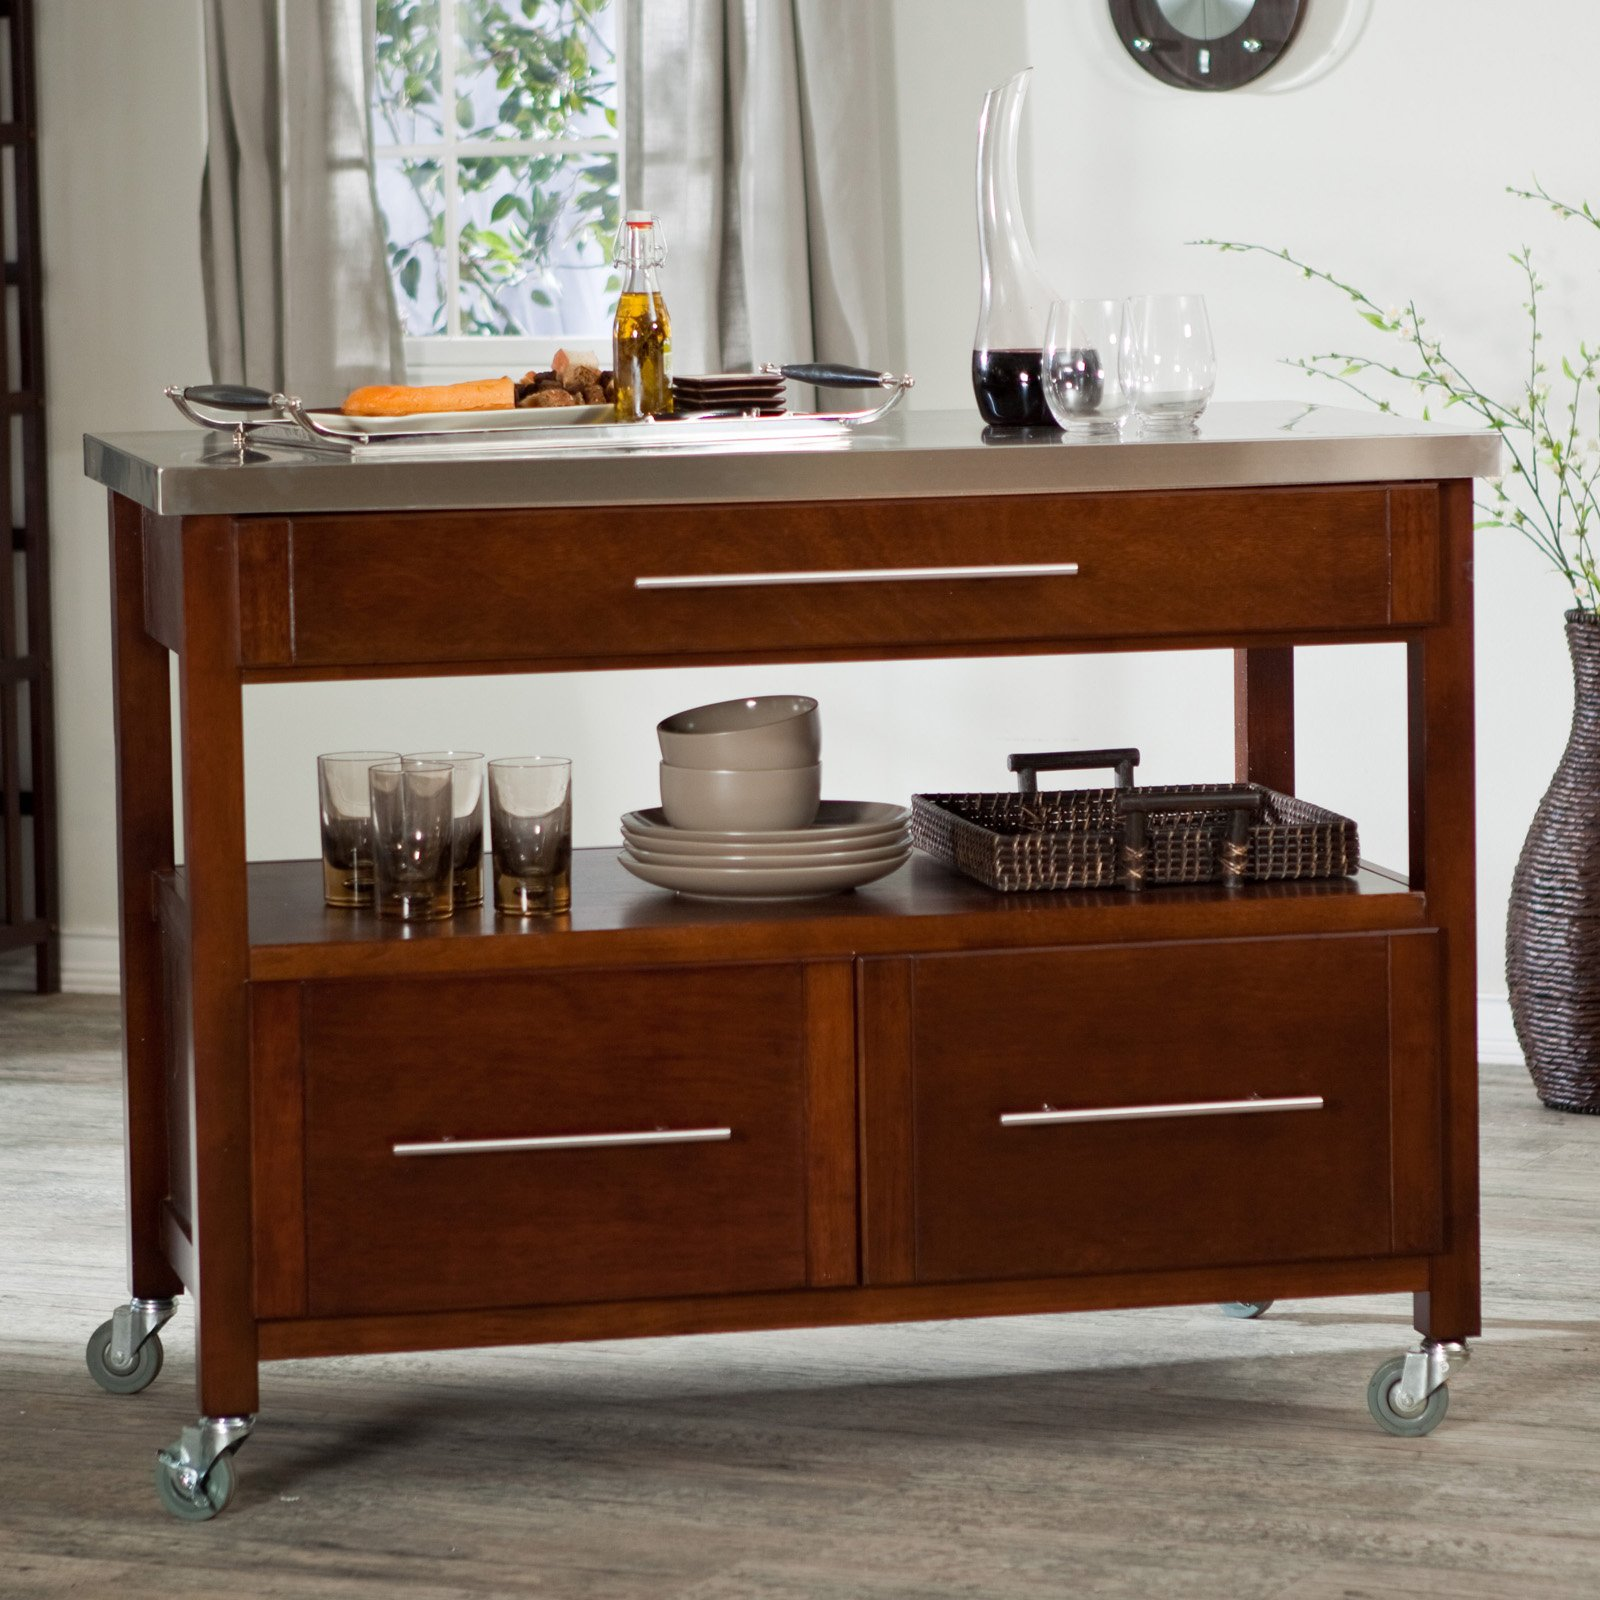 Attractive Dark Brown Kitchen Island With Drawers And Rolling